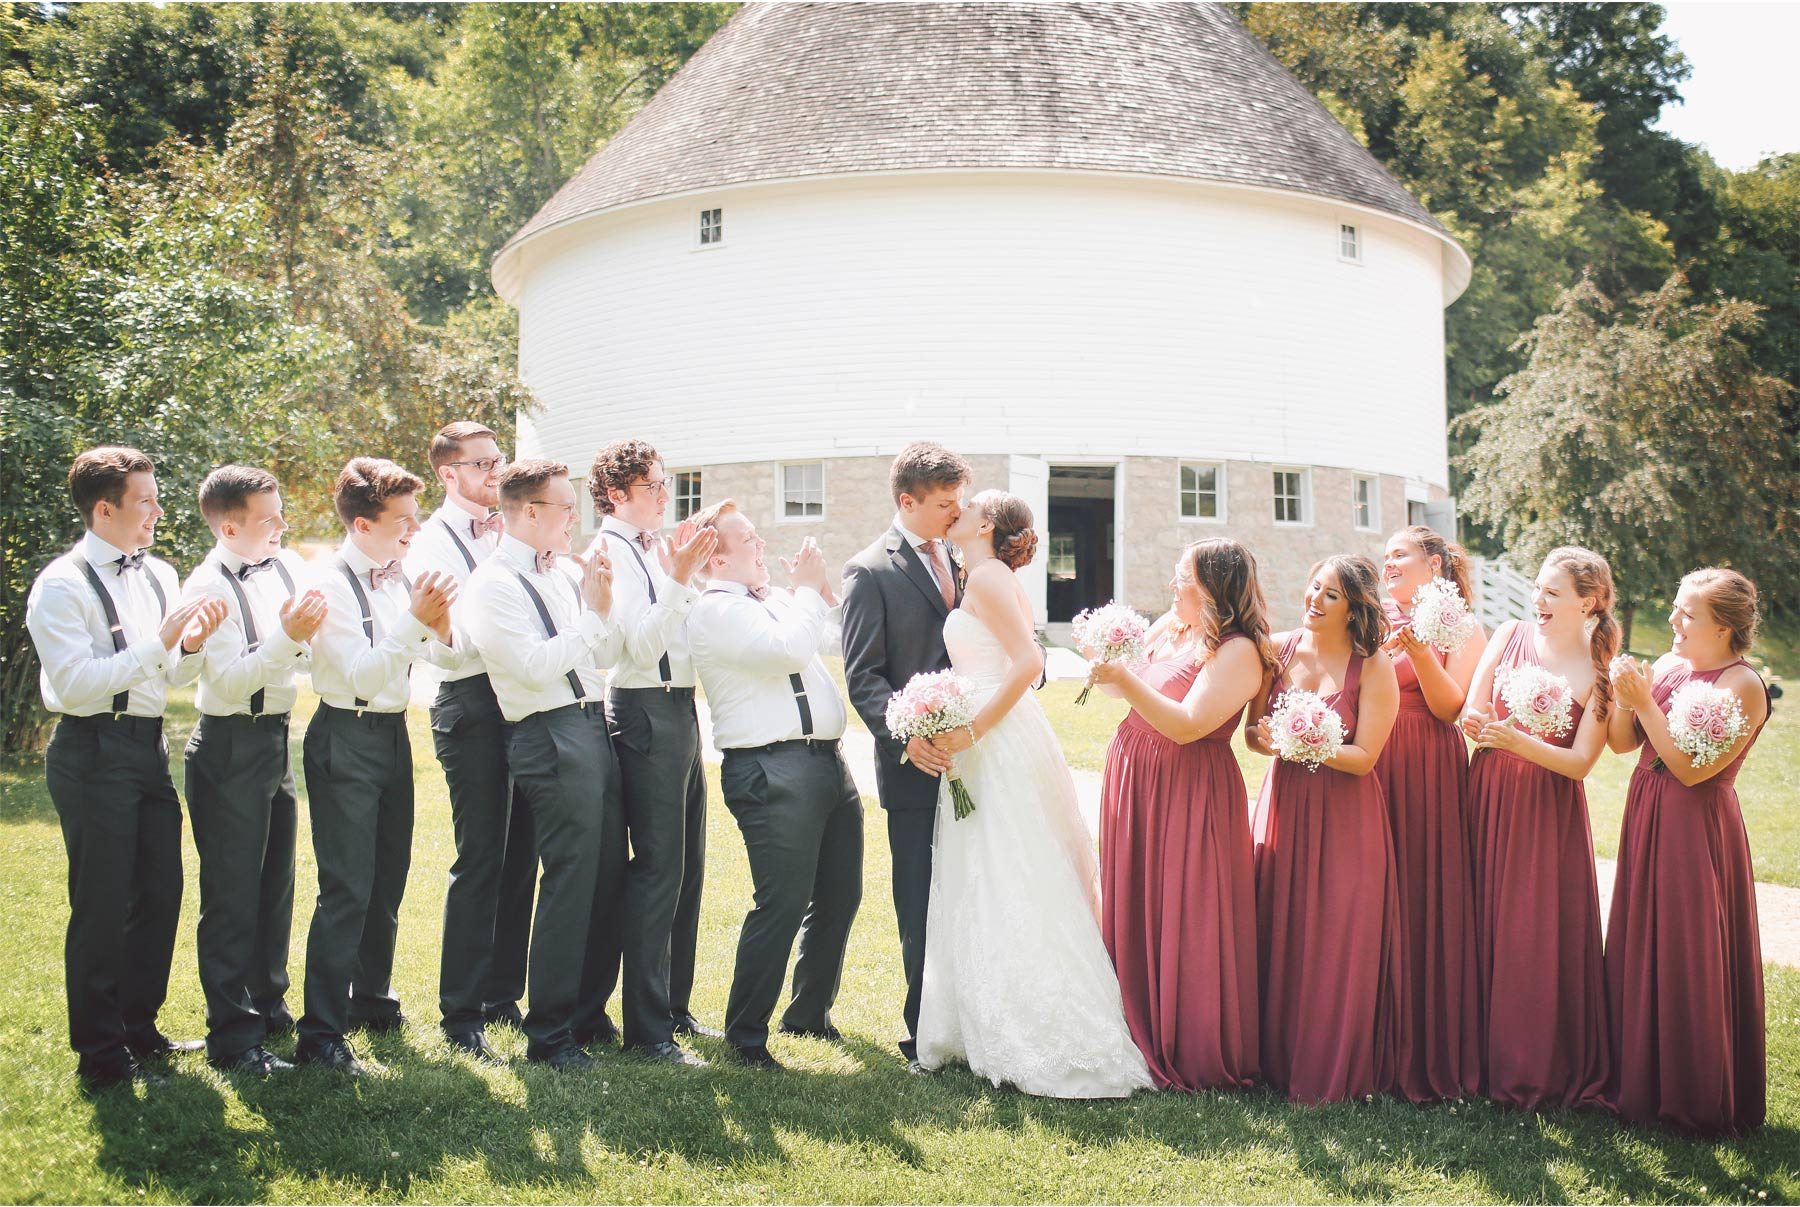 06-Red-Wing-Minnesota-Wedding-Photography-by-Vick-Photography-Round-Barn-Farm-Wedding-Party-Group-Nikki-and-Will.jpg